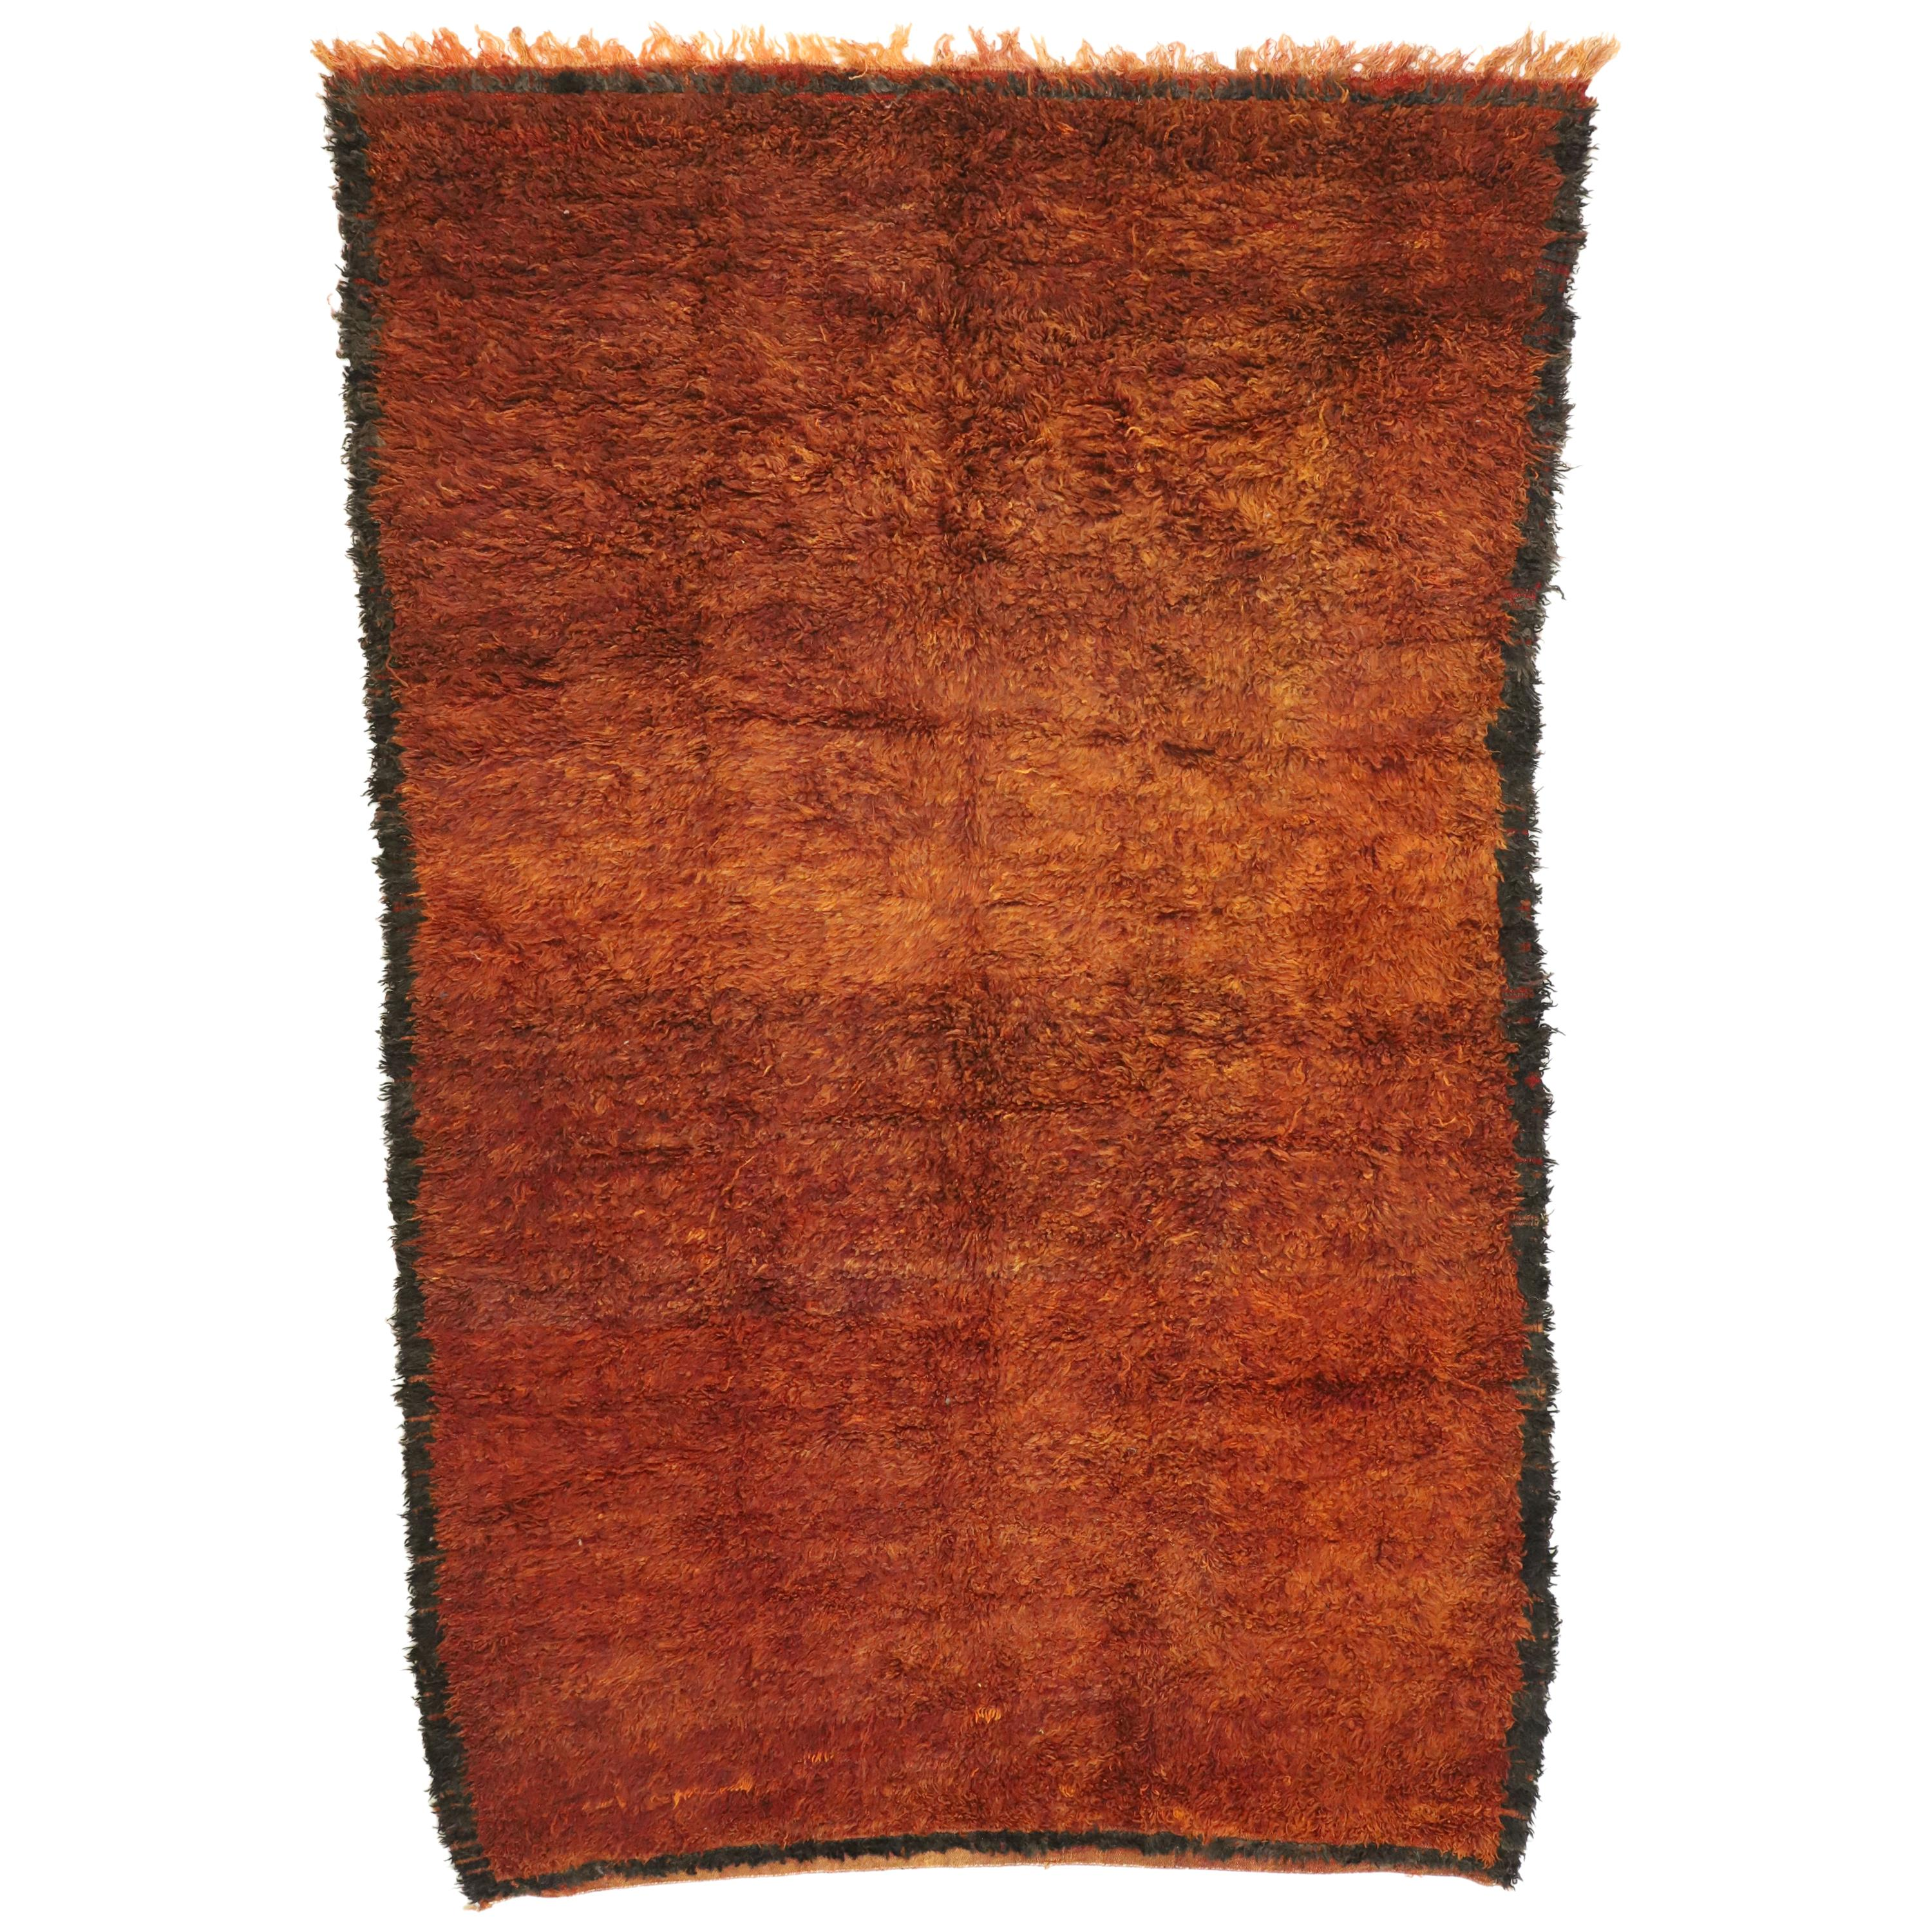 Vintage Berber Moroccan Rug with Warm, Mid-Century Modern Style